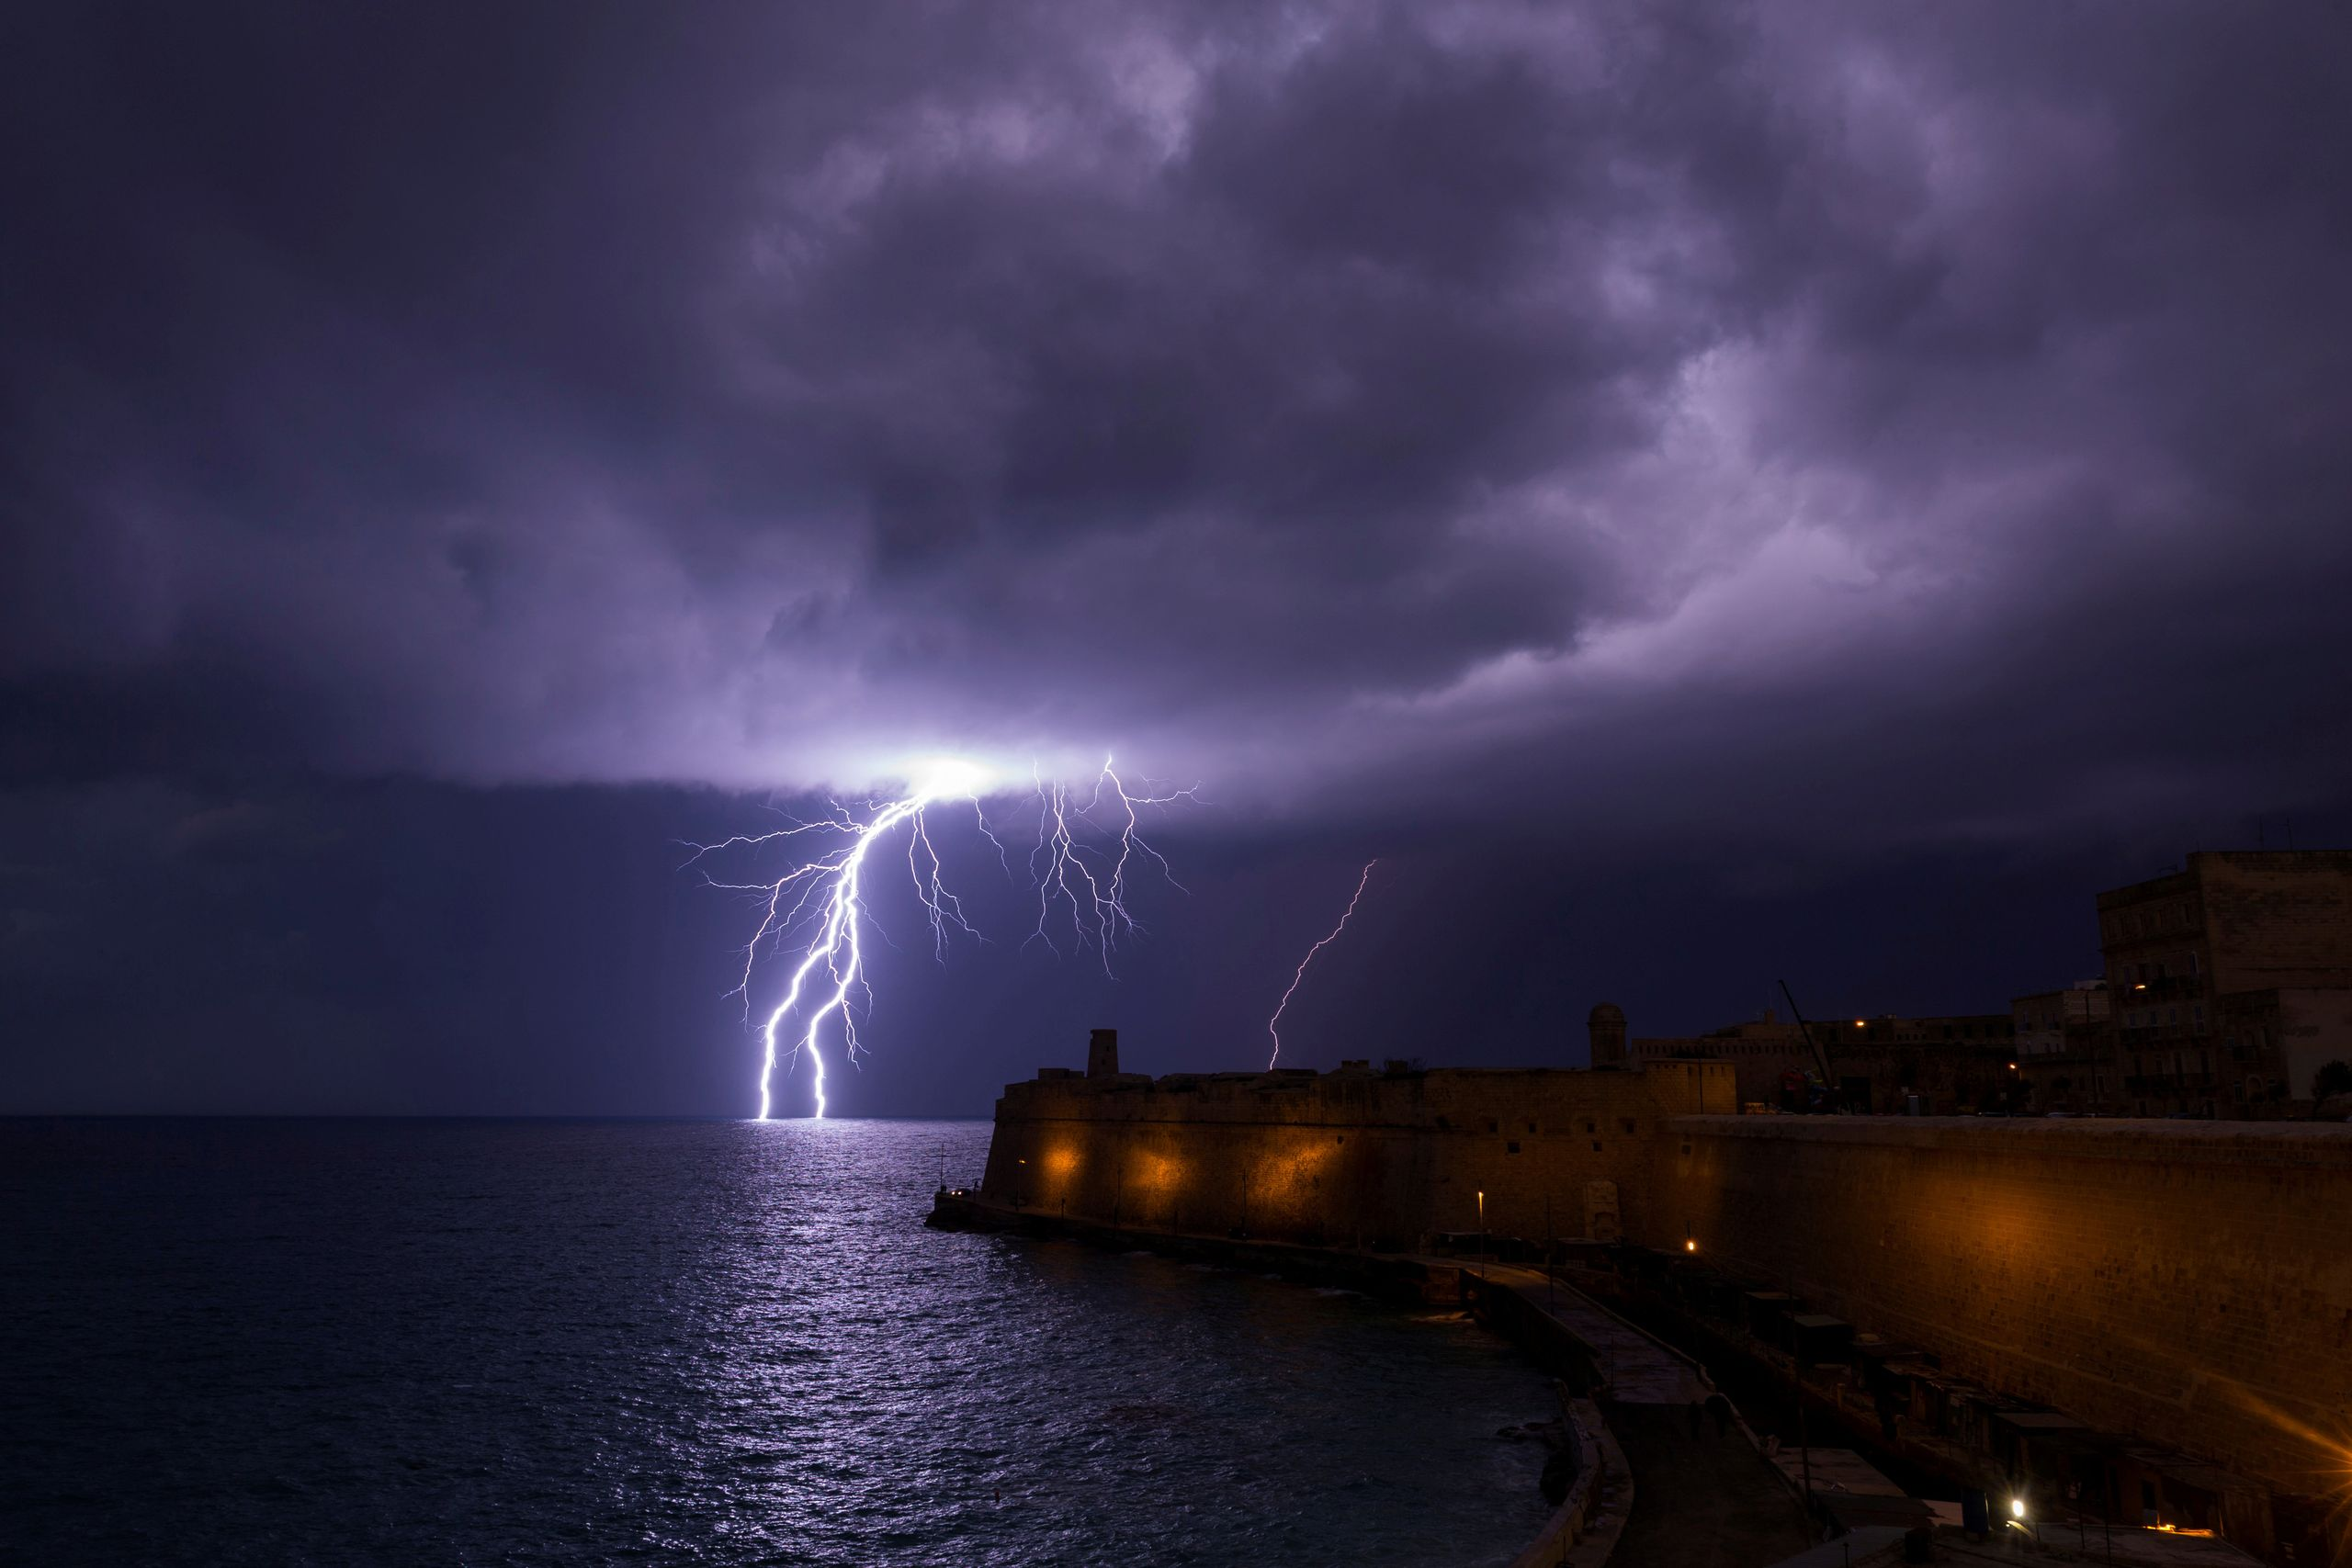 A lightning bolt strikes the sea near Fort St. Elmo during a storm in Valletta, Malta, Feb. 27, 2019.